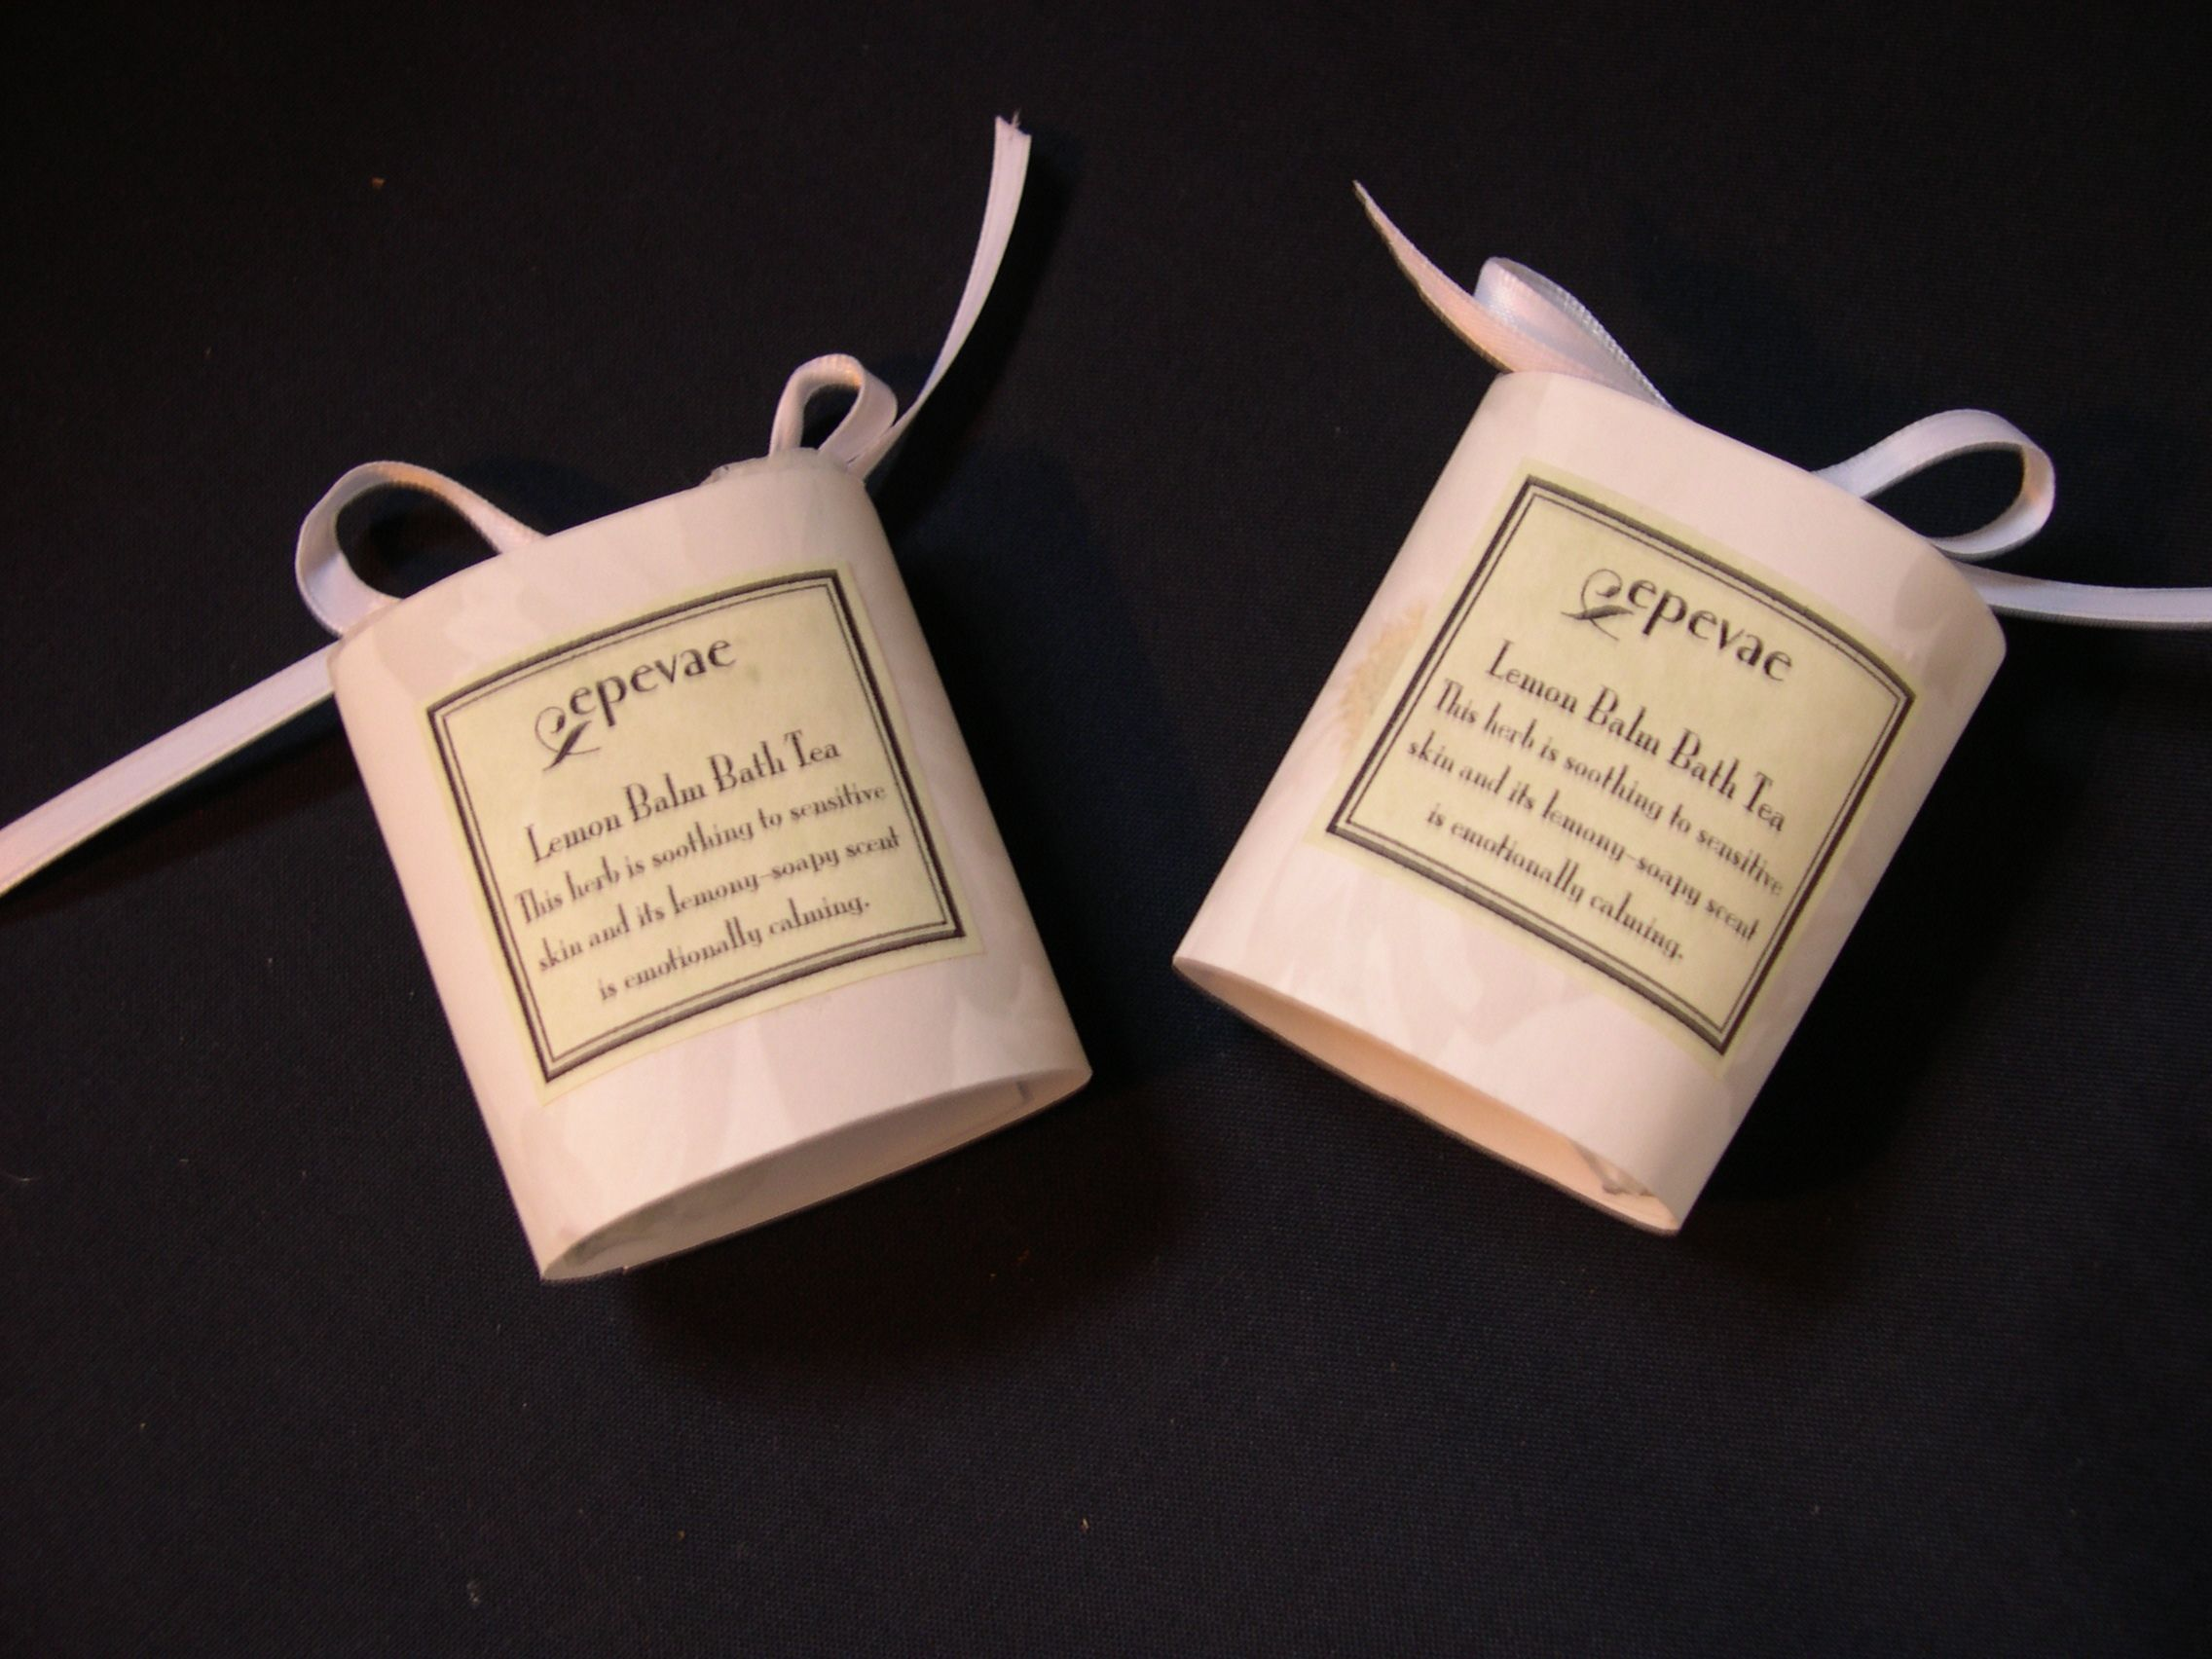 Relaxing Lemon Balm bath tea bags!